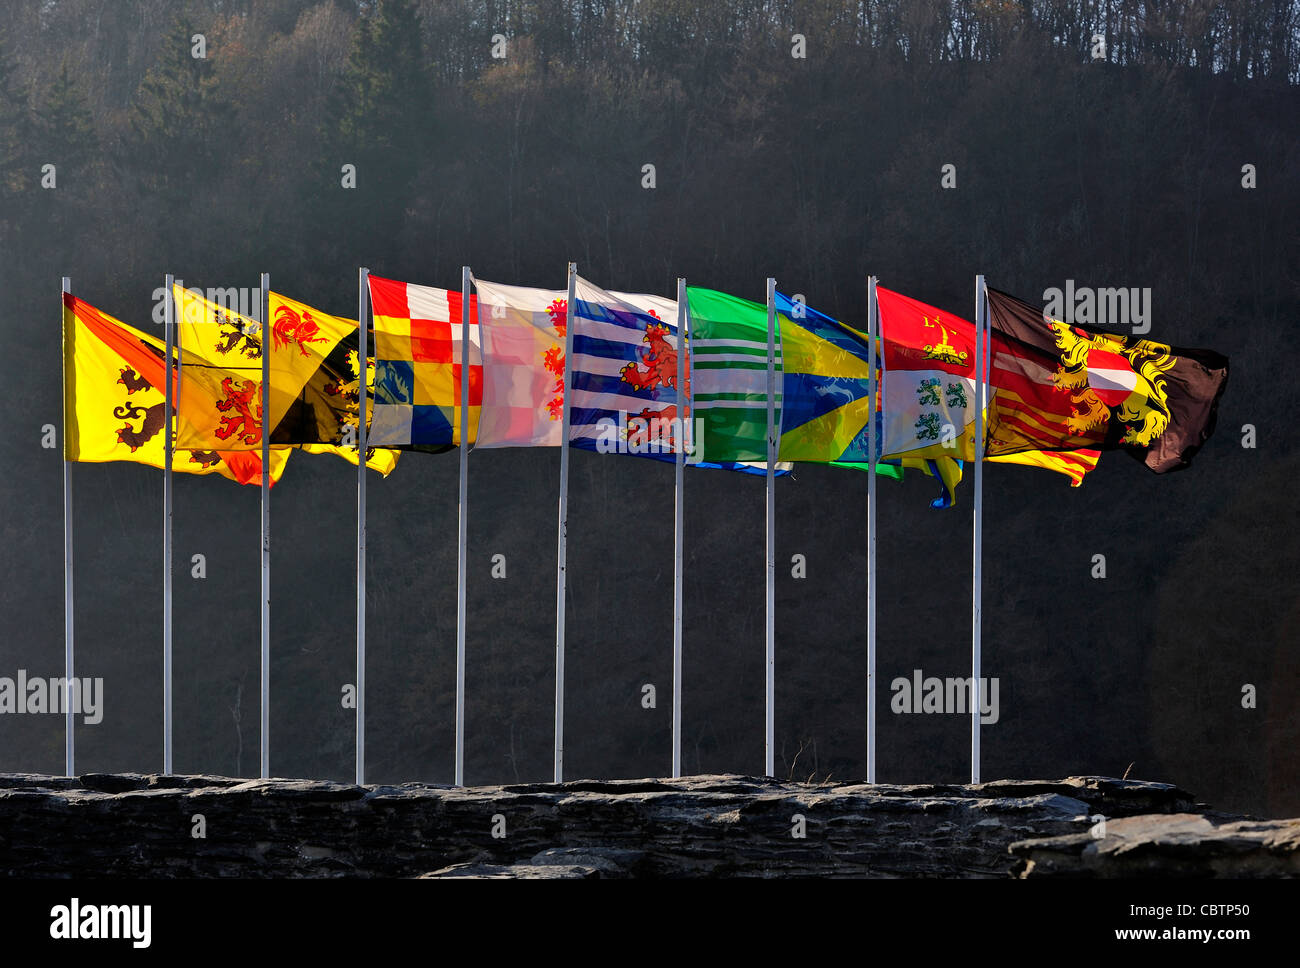 Row of flags showing coat of arms of Flemish and Walloon provinces in kingdom Belgium - Stock Image